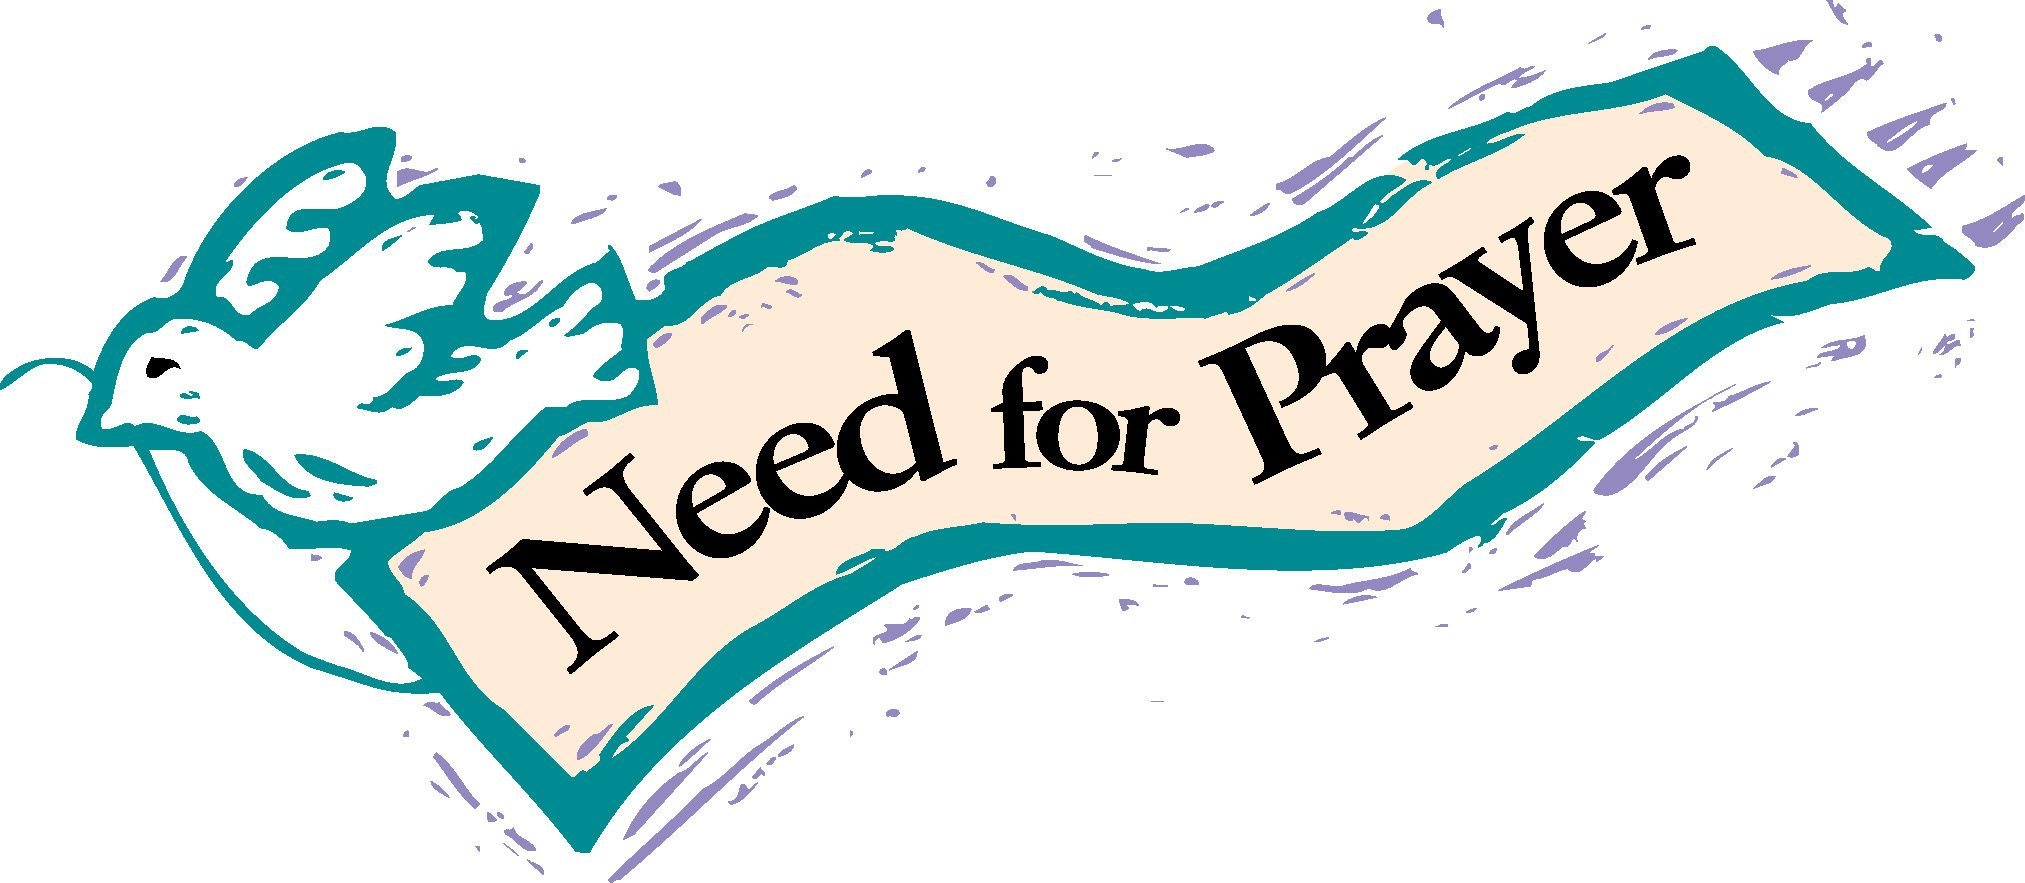 Prayer free clipart praying hands 2.